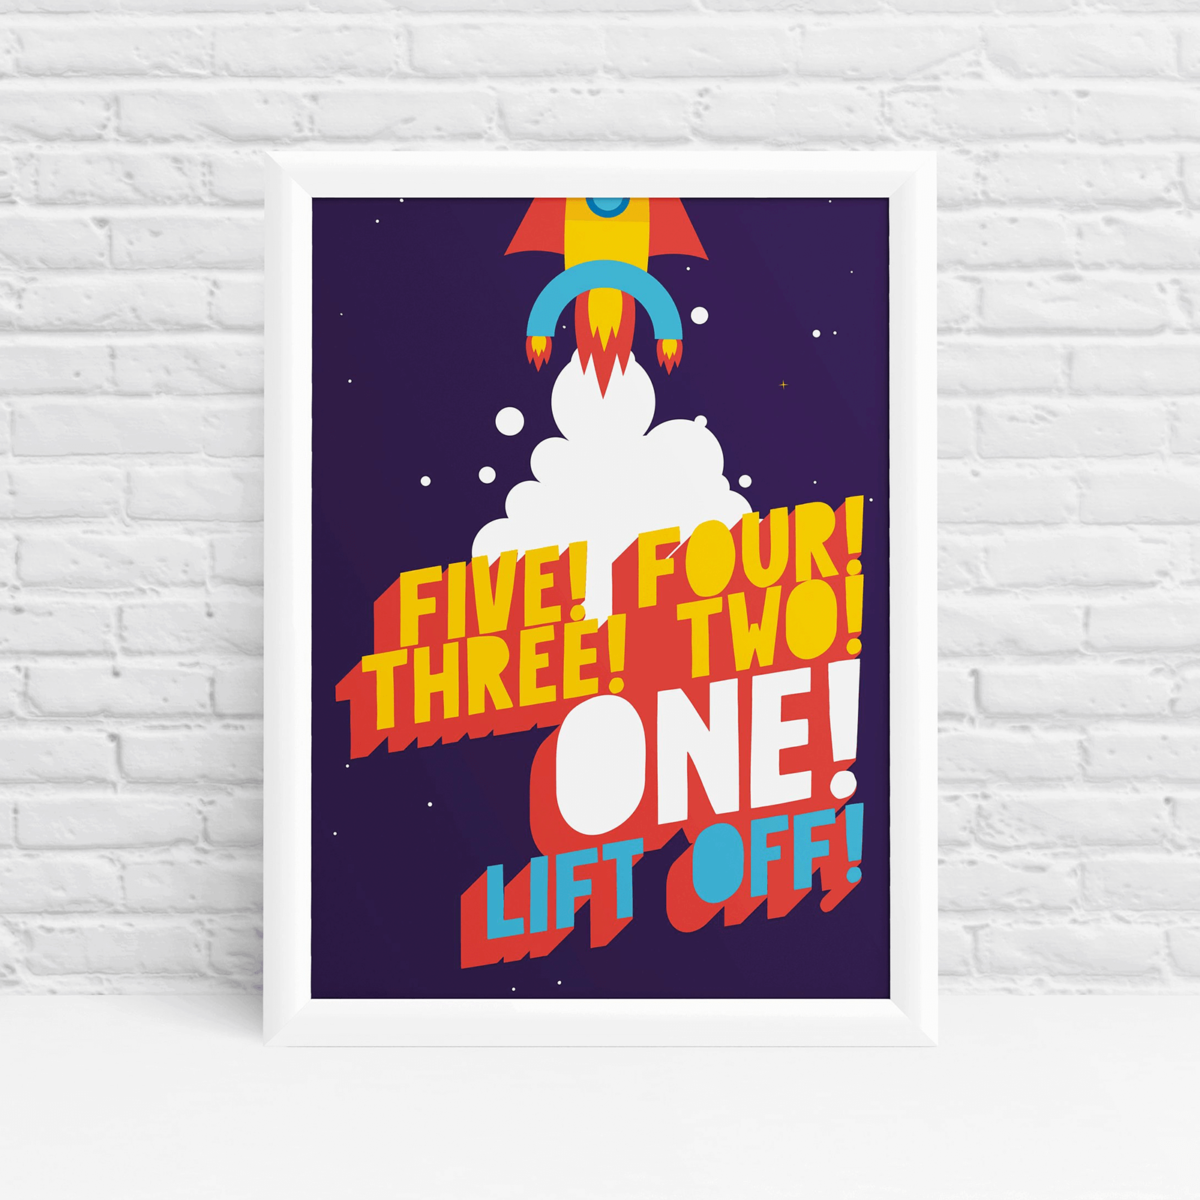 Countdown to liftoff wall art by Ibbleobble